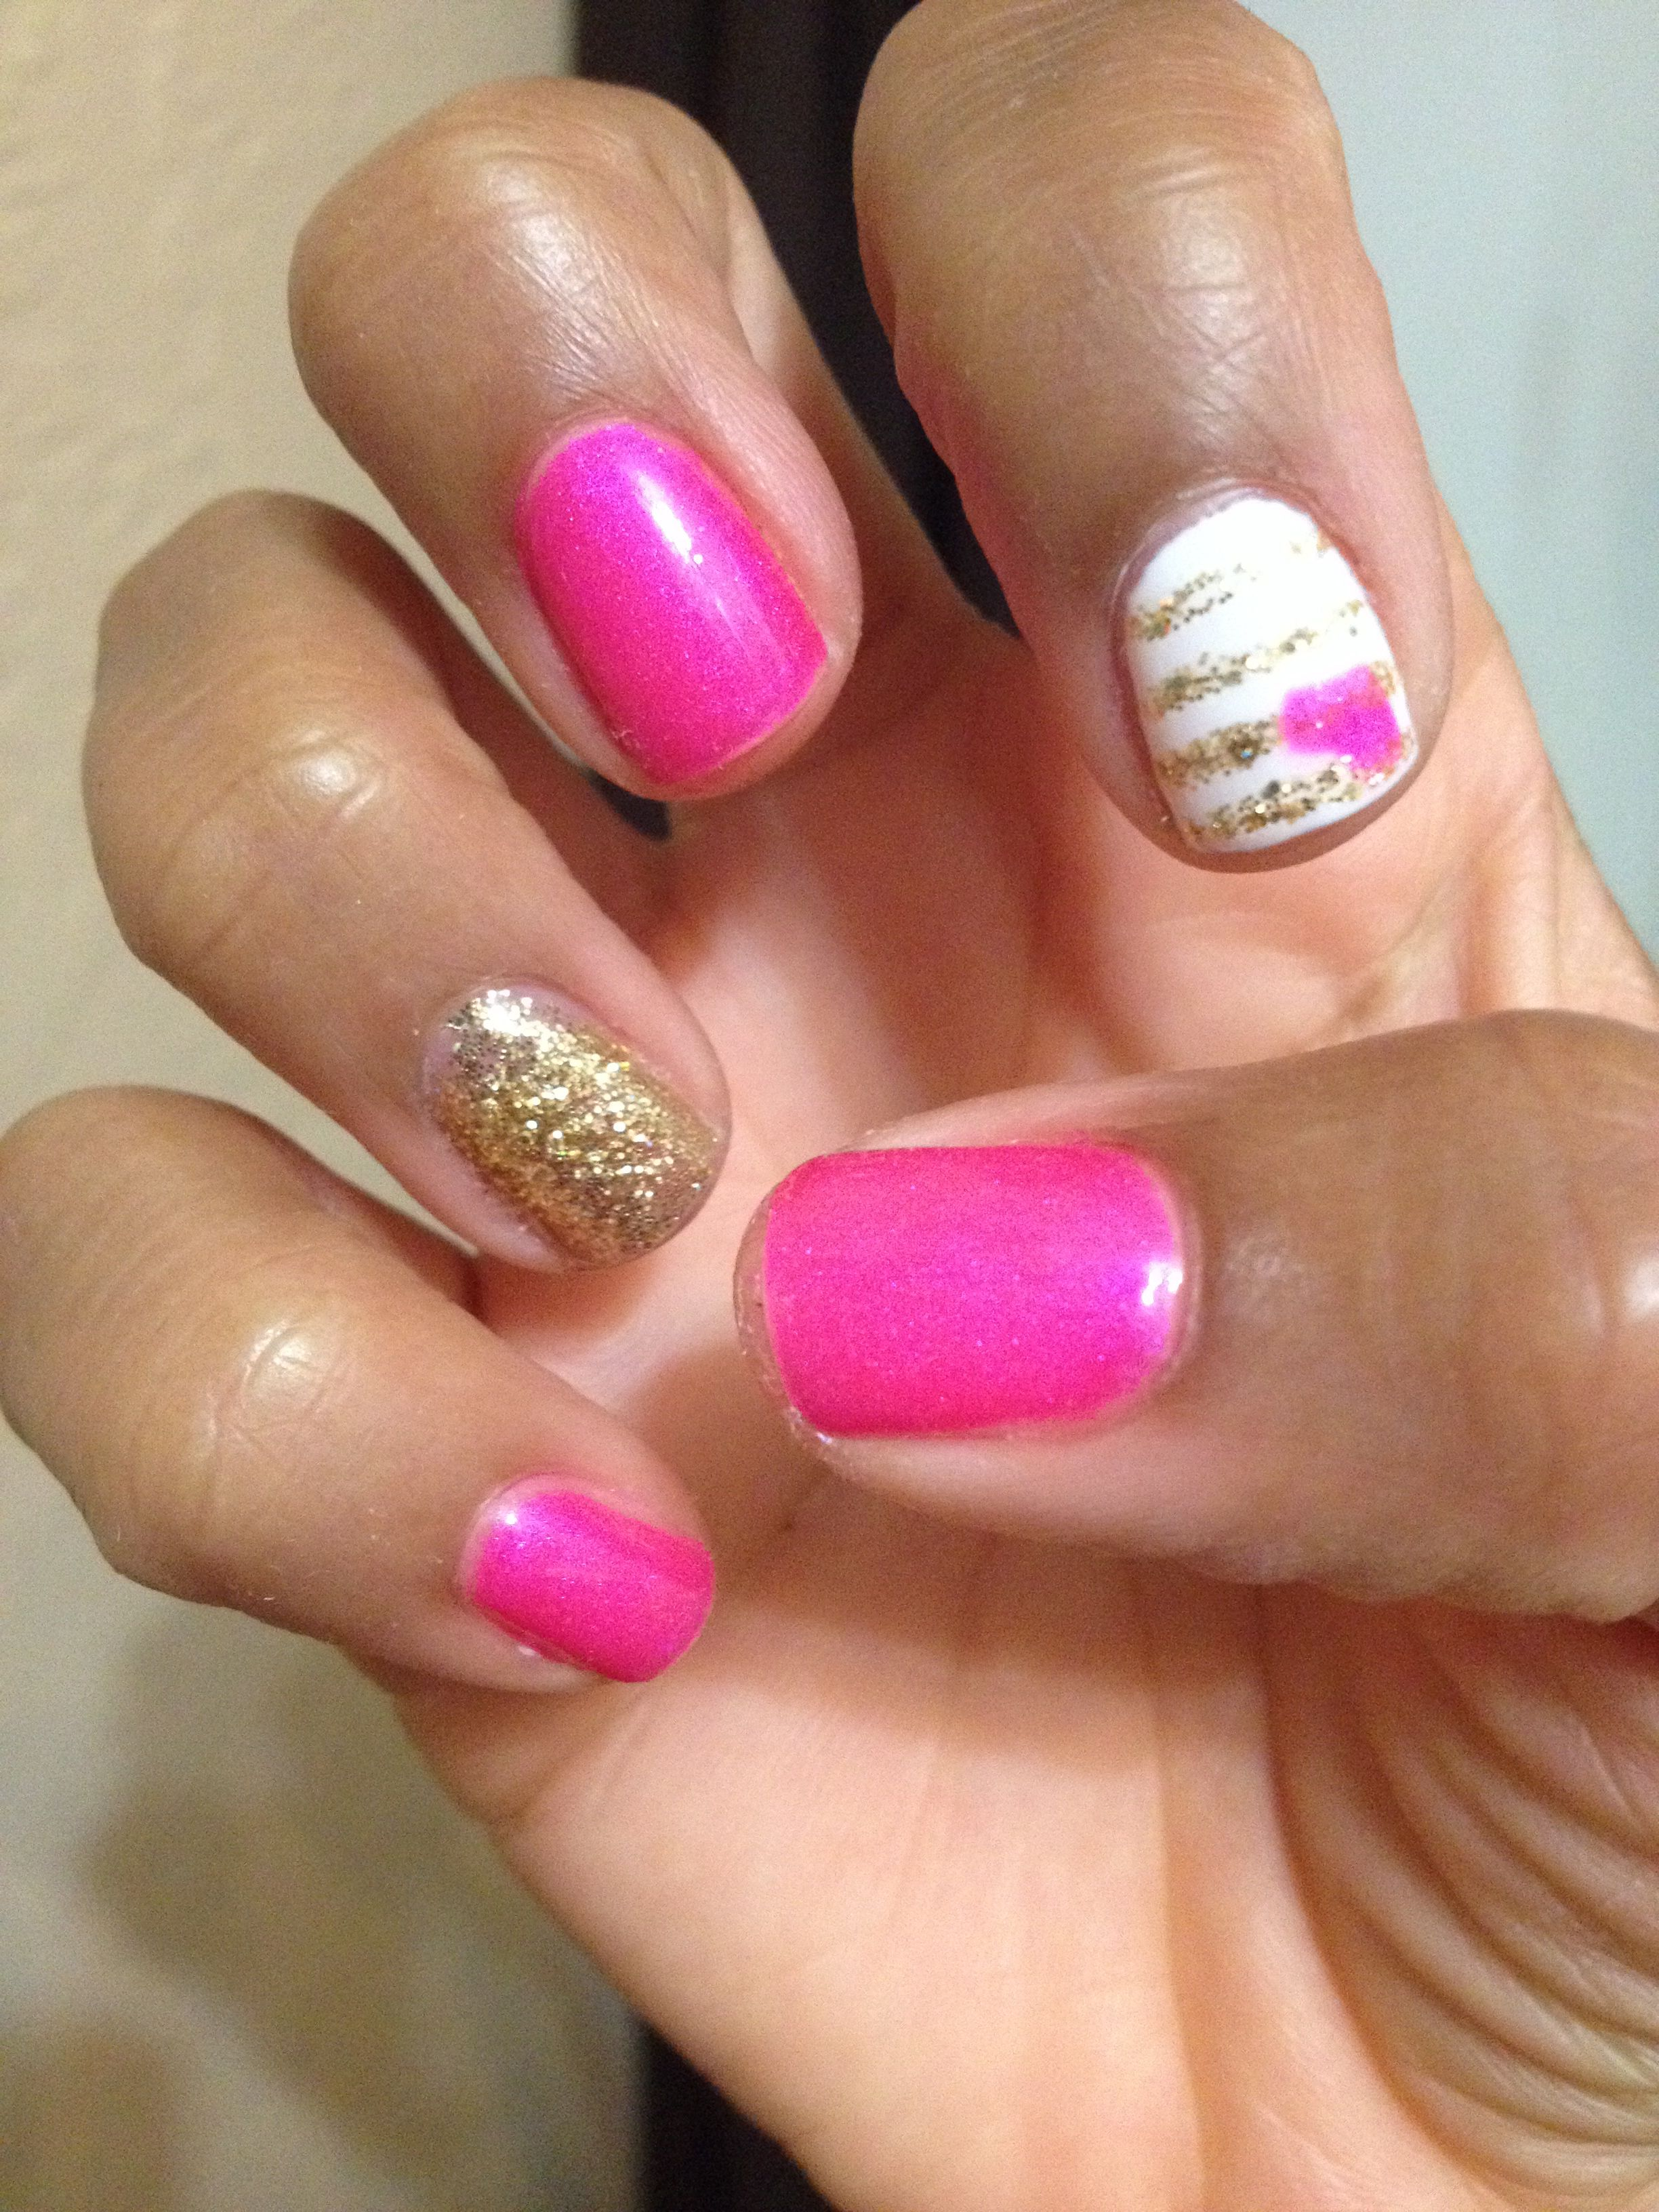 Diy pink gel nails with gold and white accents my nails diy pink gel nails with gold and white accents solutioingenieria Choice Image